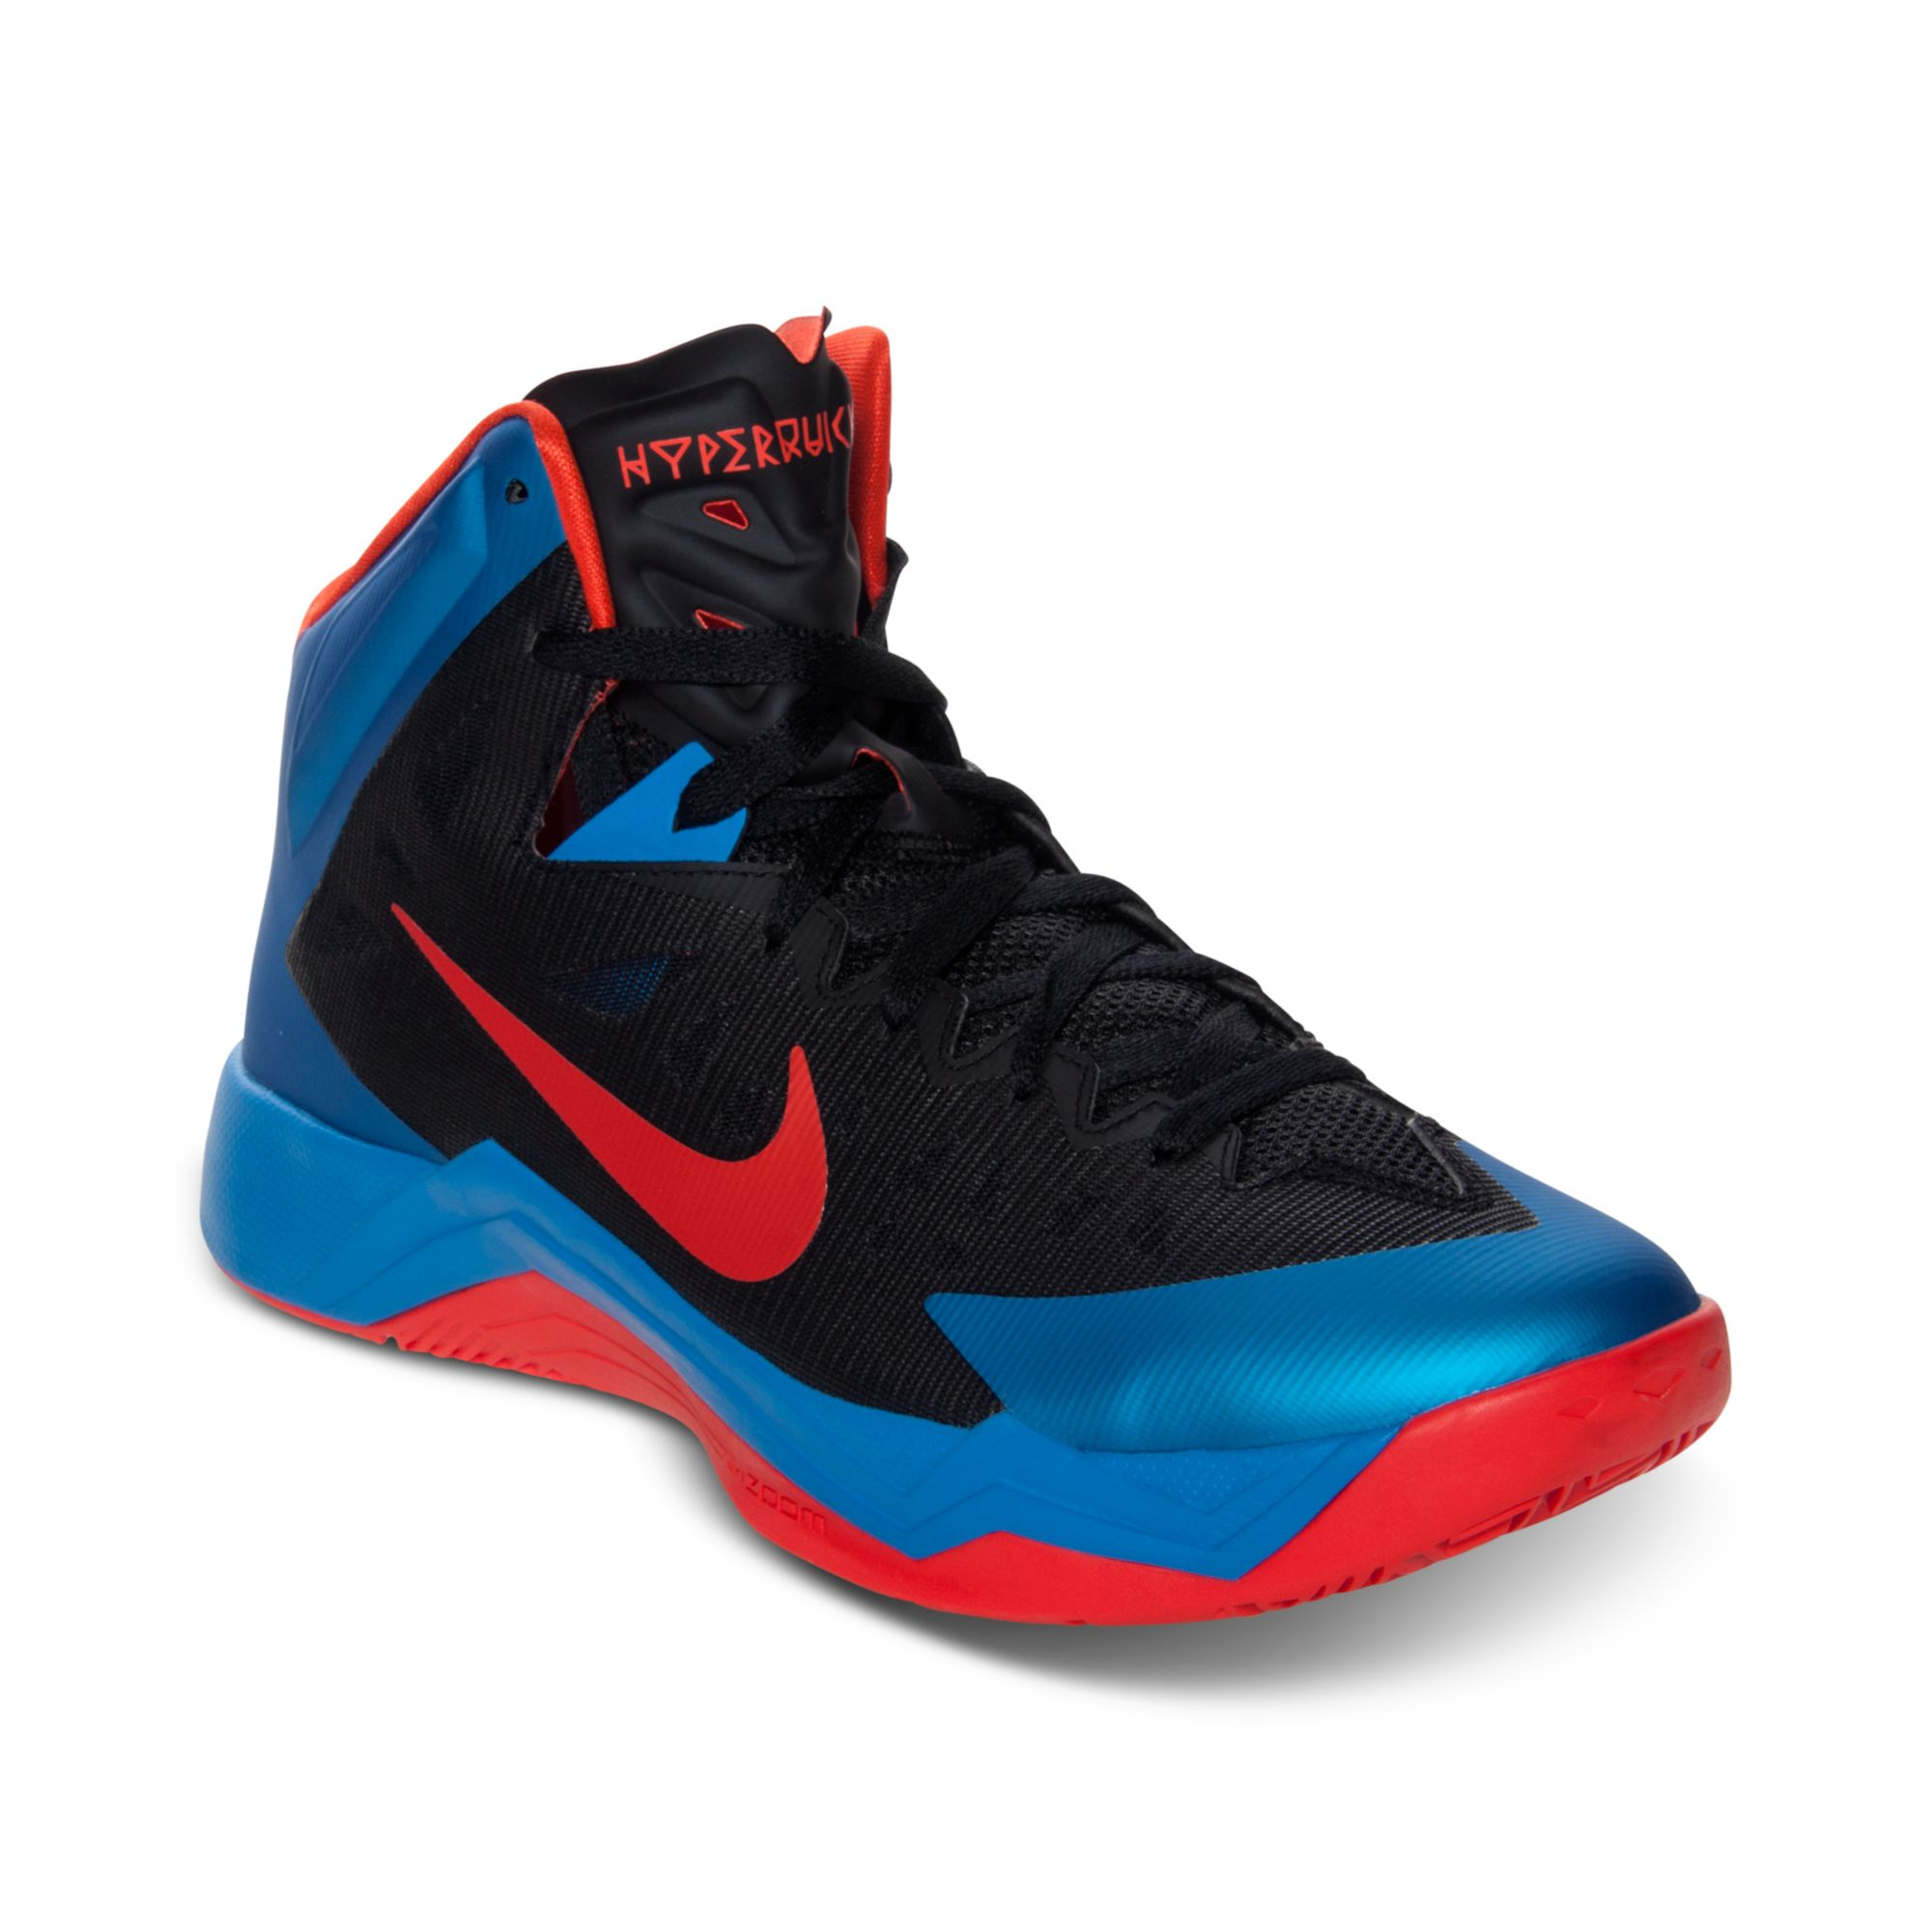 7a3c5c95bd67 Lyst - Nike Mens Hyper Quickness Basketball Sneakers From Finish ...